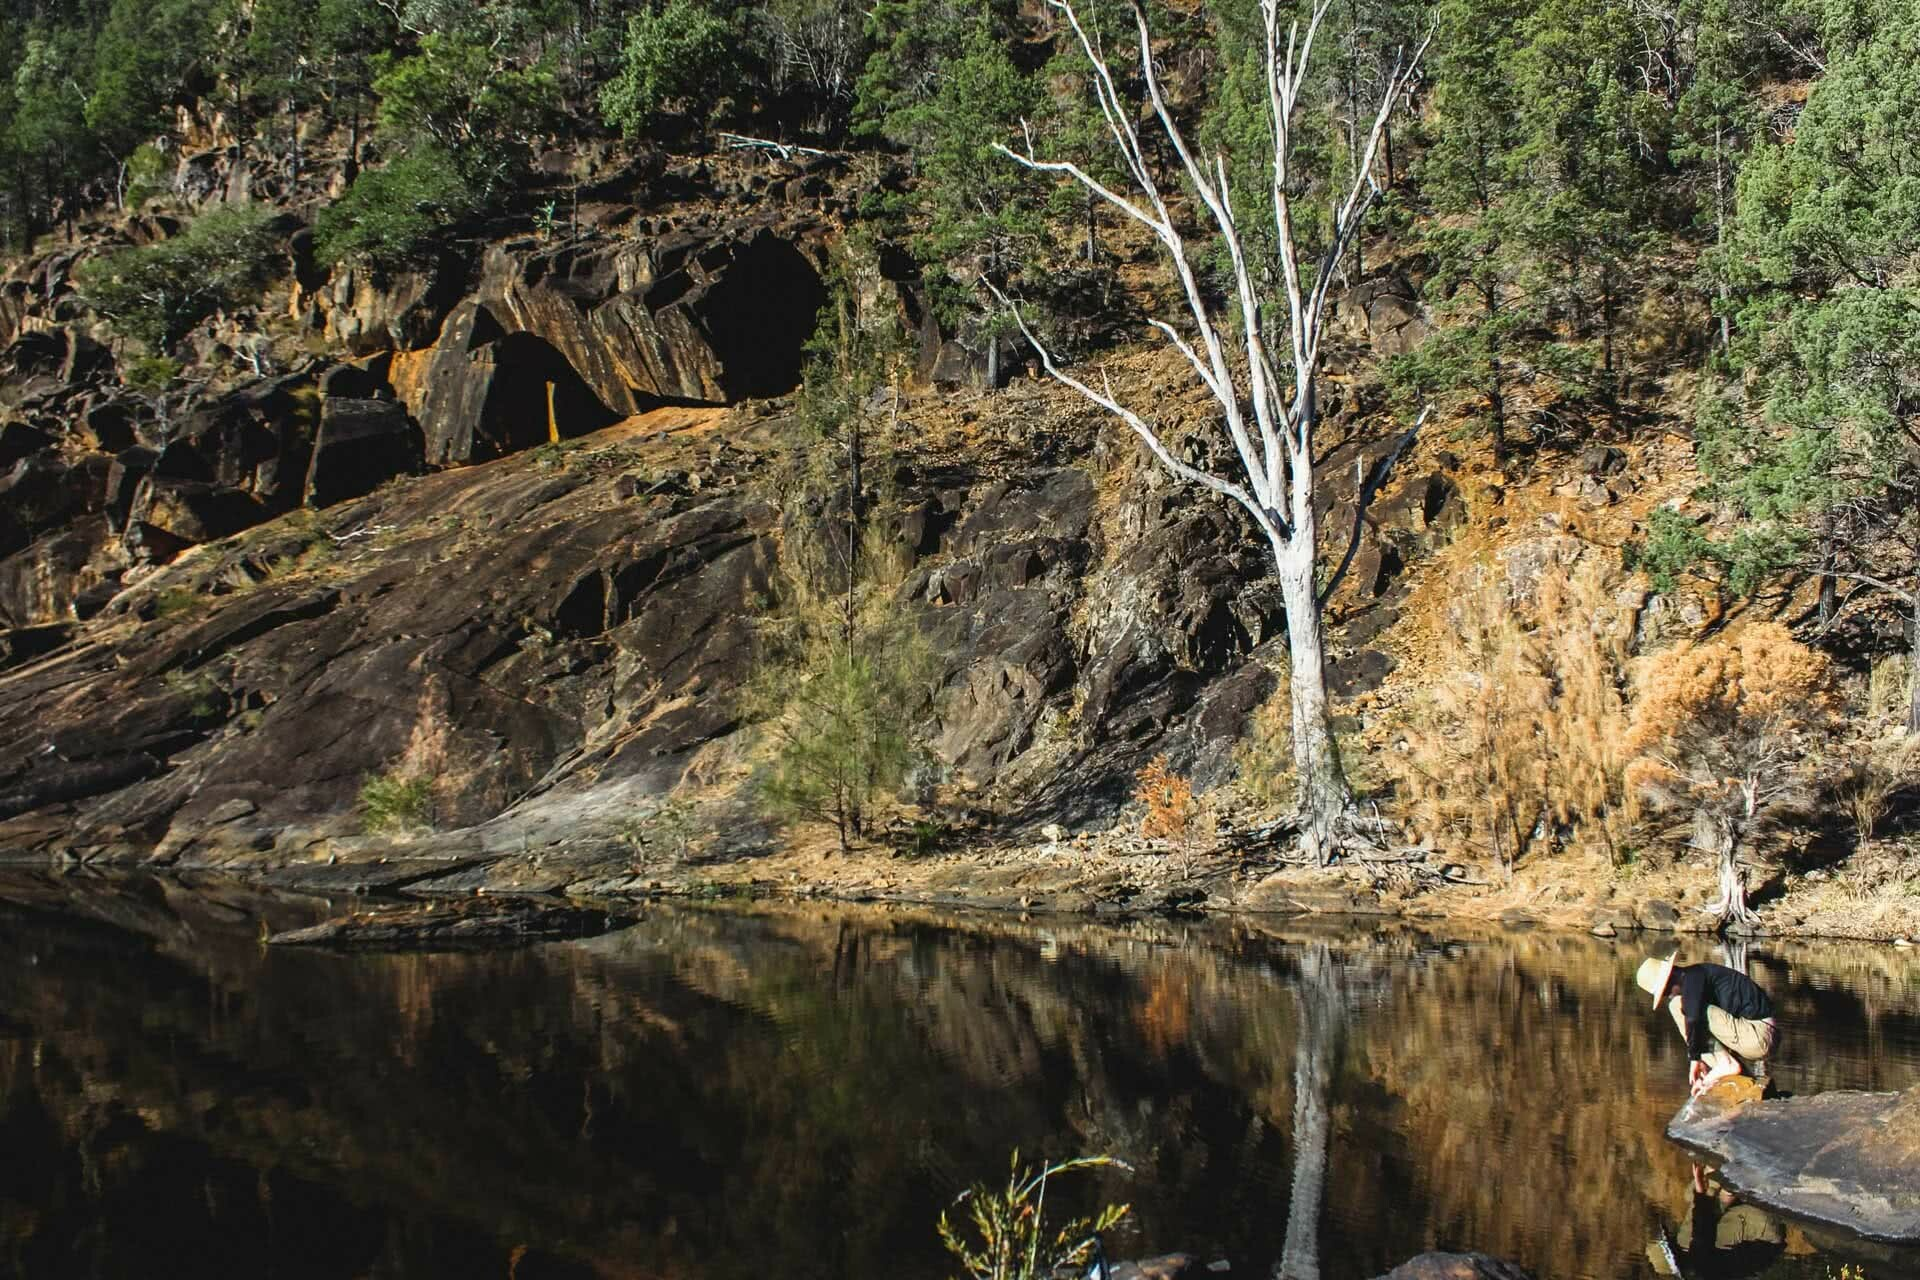 Sun-up to Sundown National Park – The Mt Donaldson Circuit (QLD), Saphira Schroers, Early Morning at Wallaby Rocks Waterhole, river, cliffs, gumtree